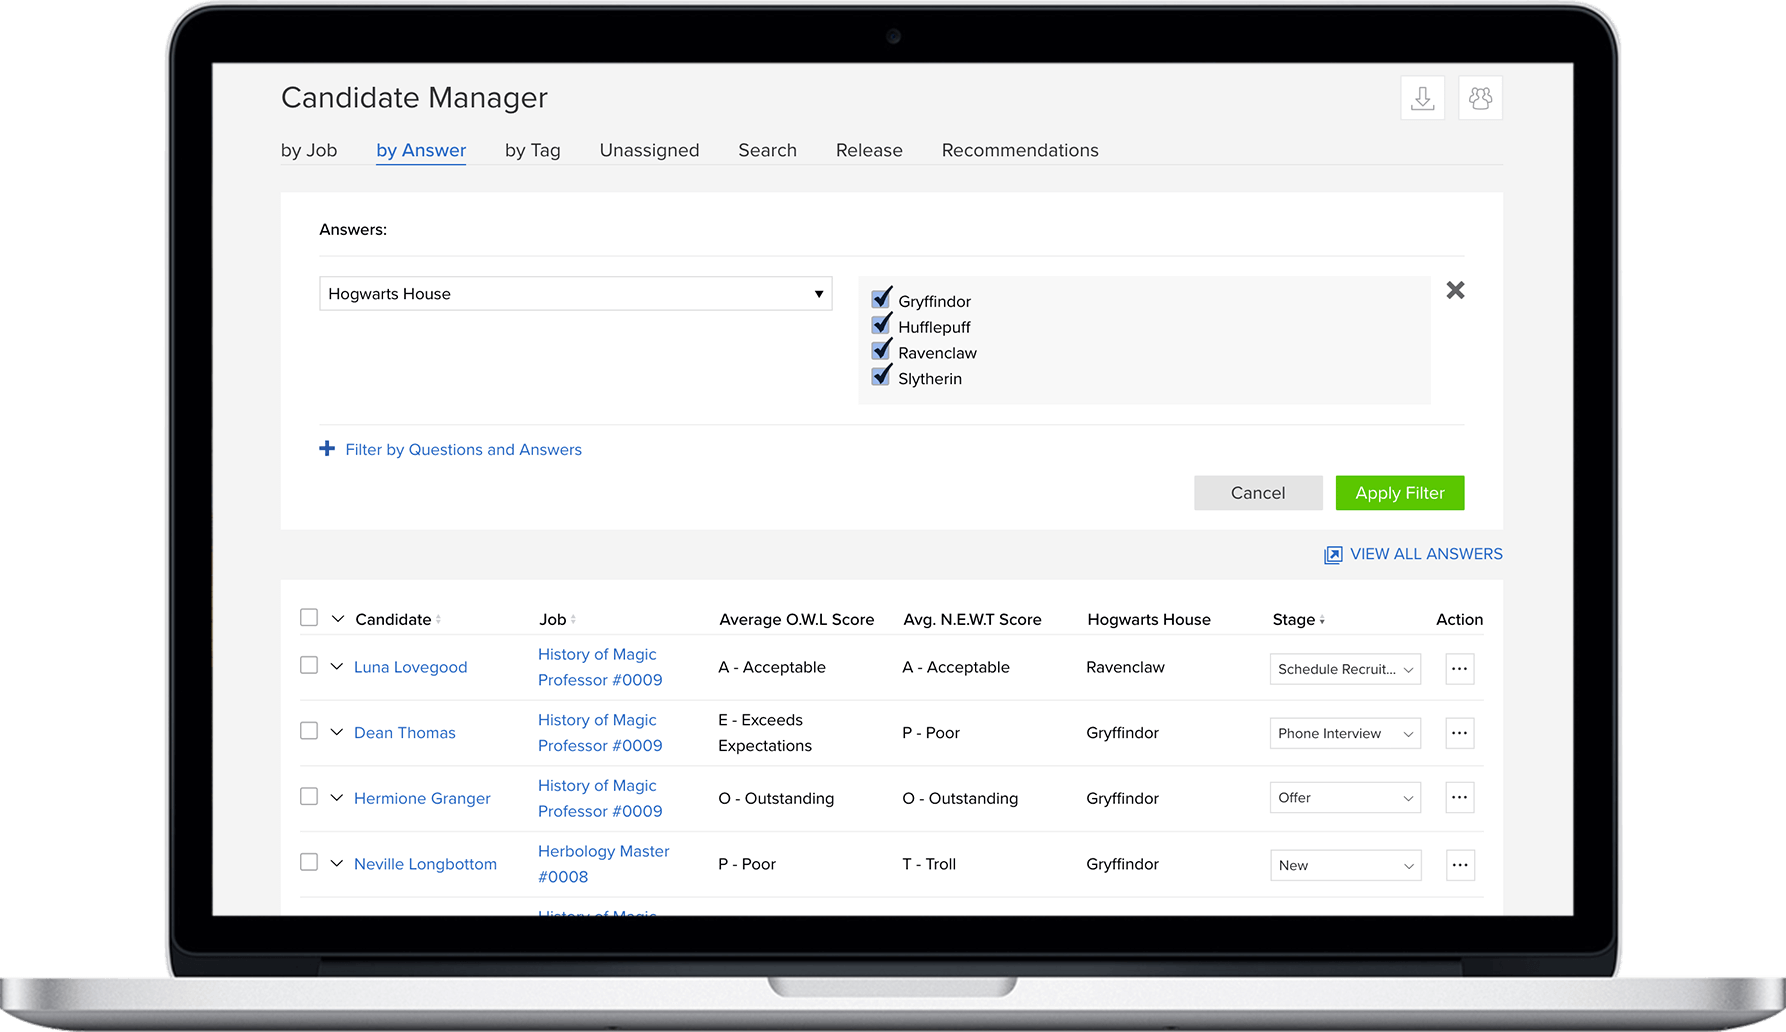 JobScore candidate manager dashboard to hire better